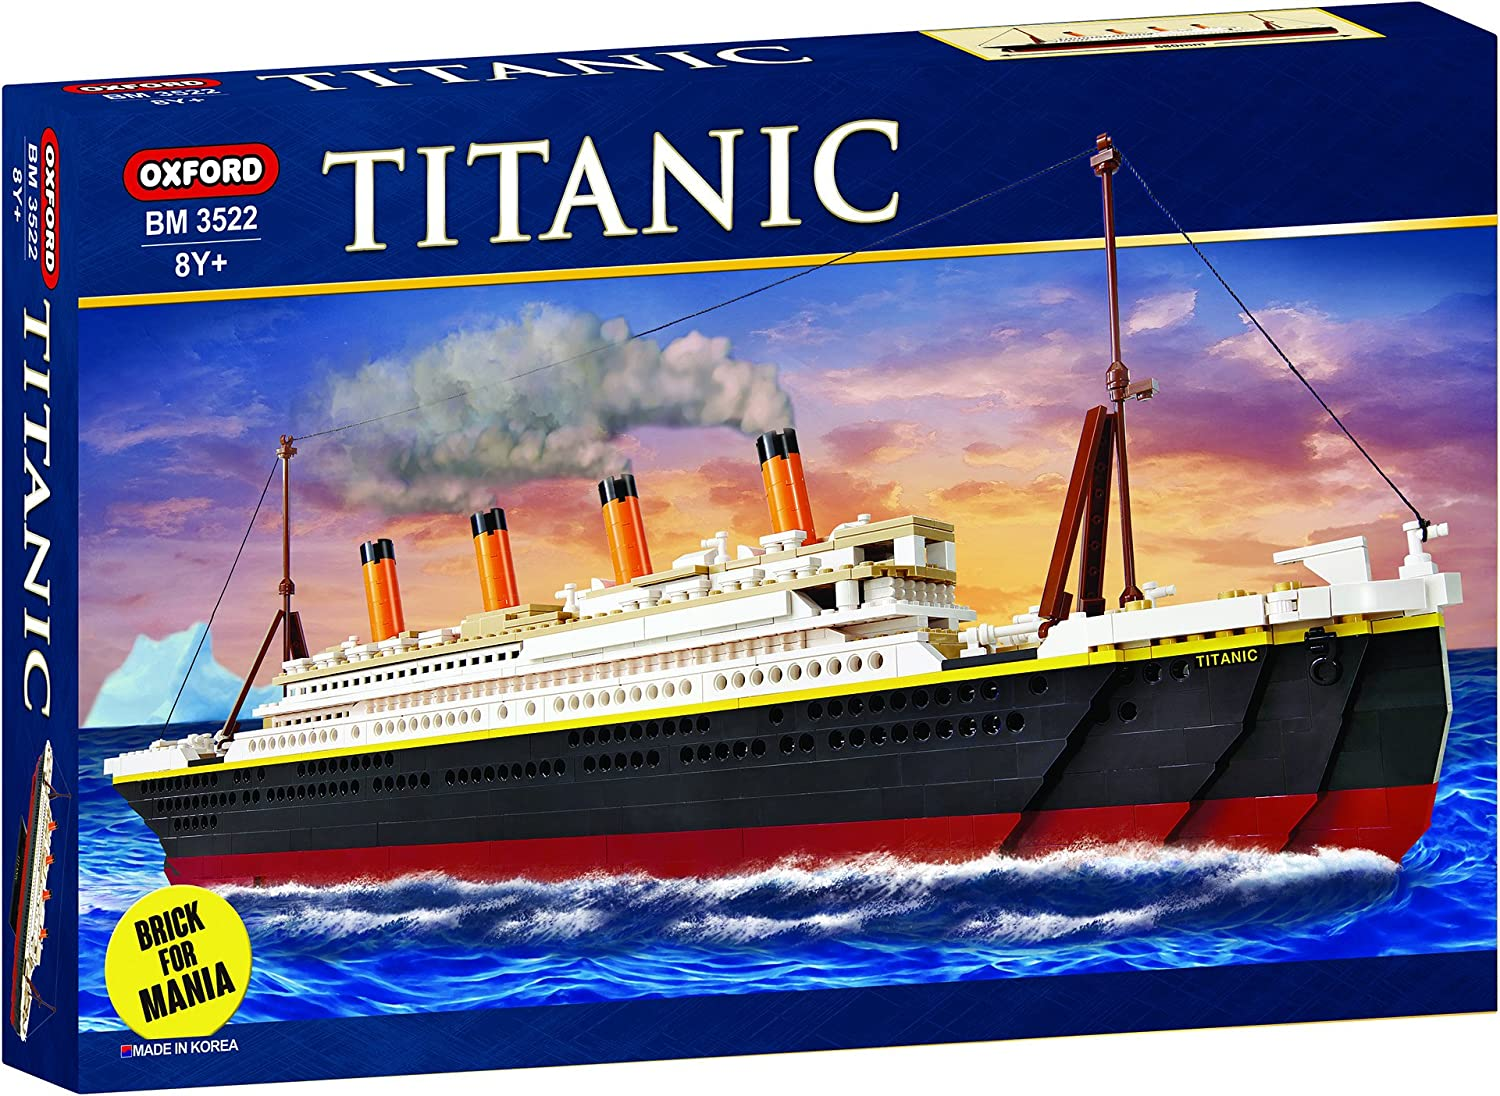 la red entera más baja Oxford Titanic Building Block Kit, Kit, Kit, Special Edition Assembly Blocks BM 3522 by Oxford Block  promociones emocionantes